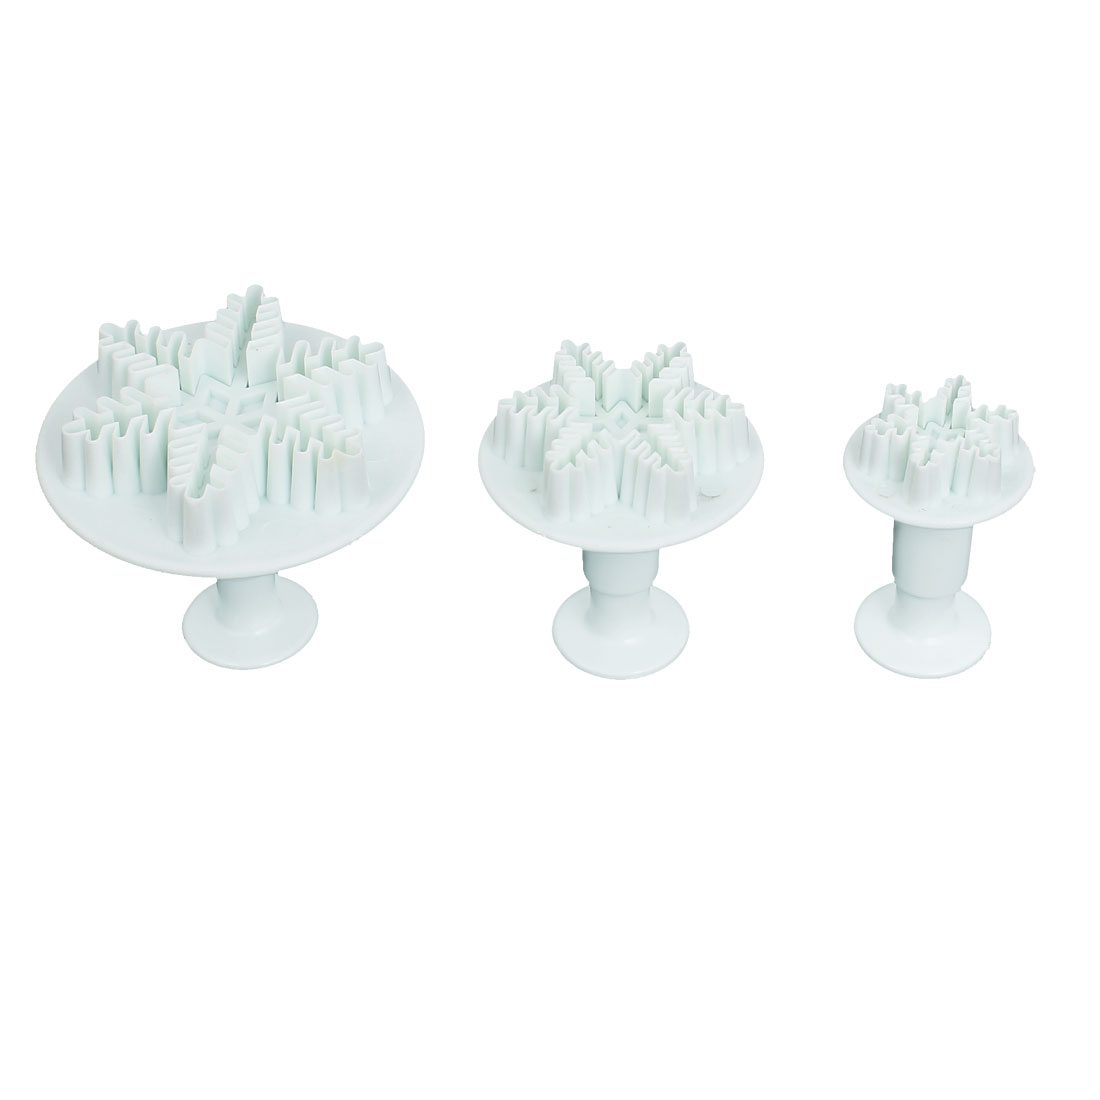 3Pcs Snowflake Shape Cake Decorating Mold Mould Sugarcraft Plunger Cutter Tools